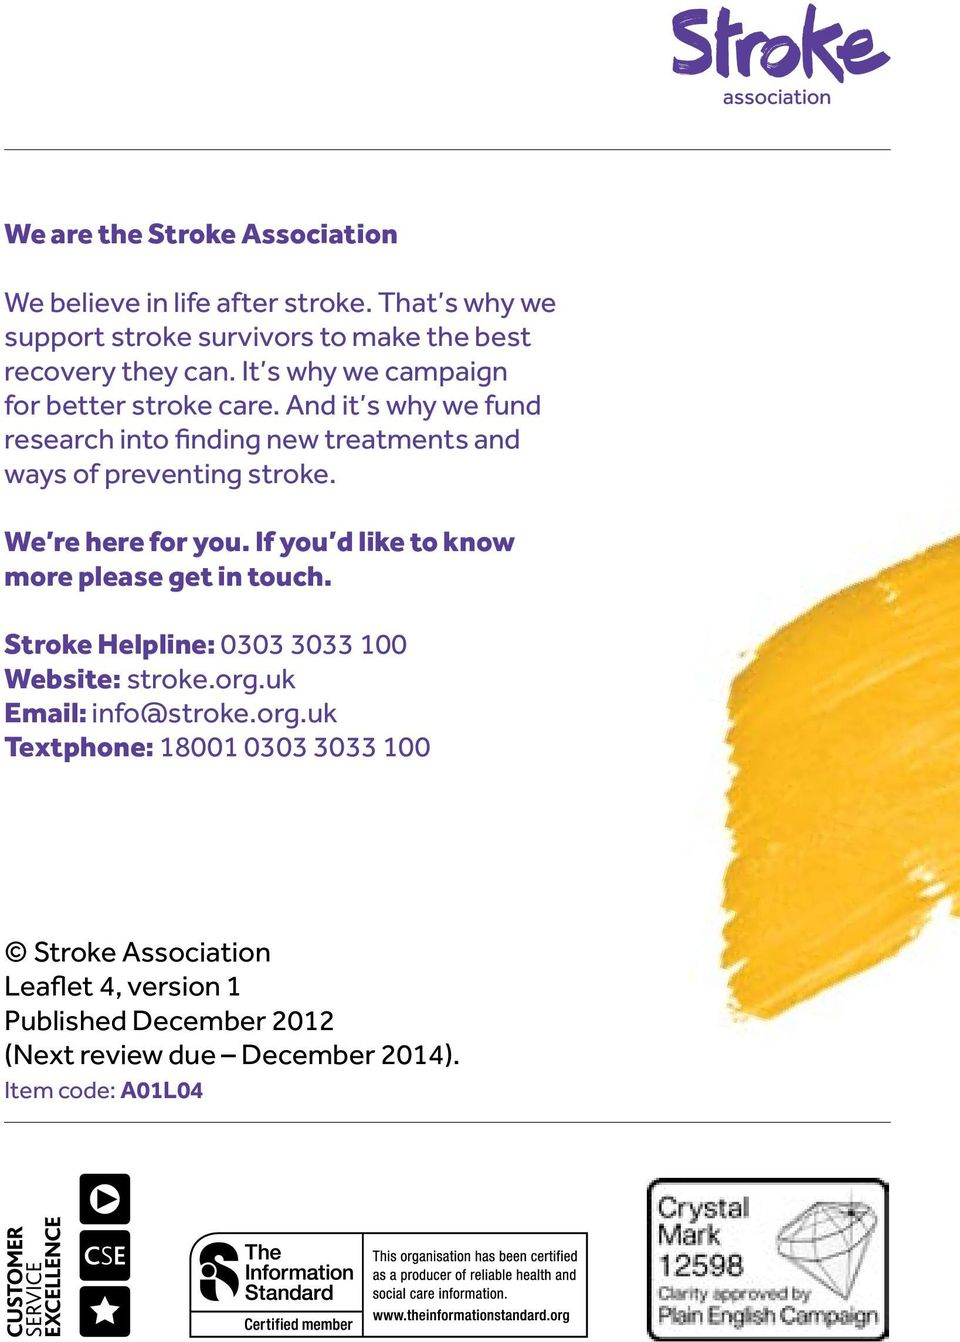 We re here for you. If you d like to know more please get in touch. Stroke Helpline: 0303 3033 100 Website: stroke.org.uk Email: info@stroke.